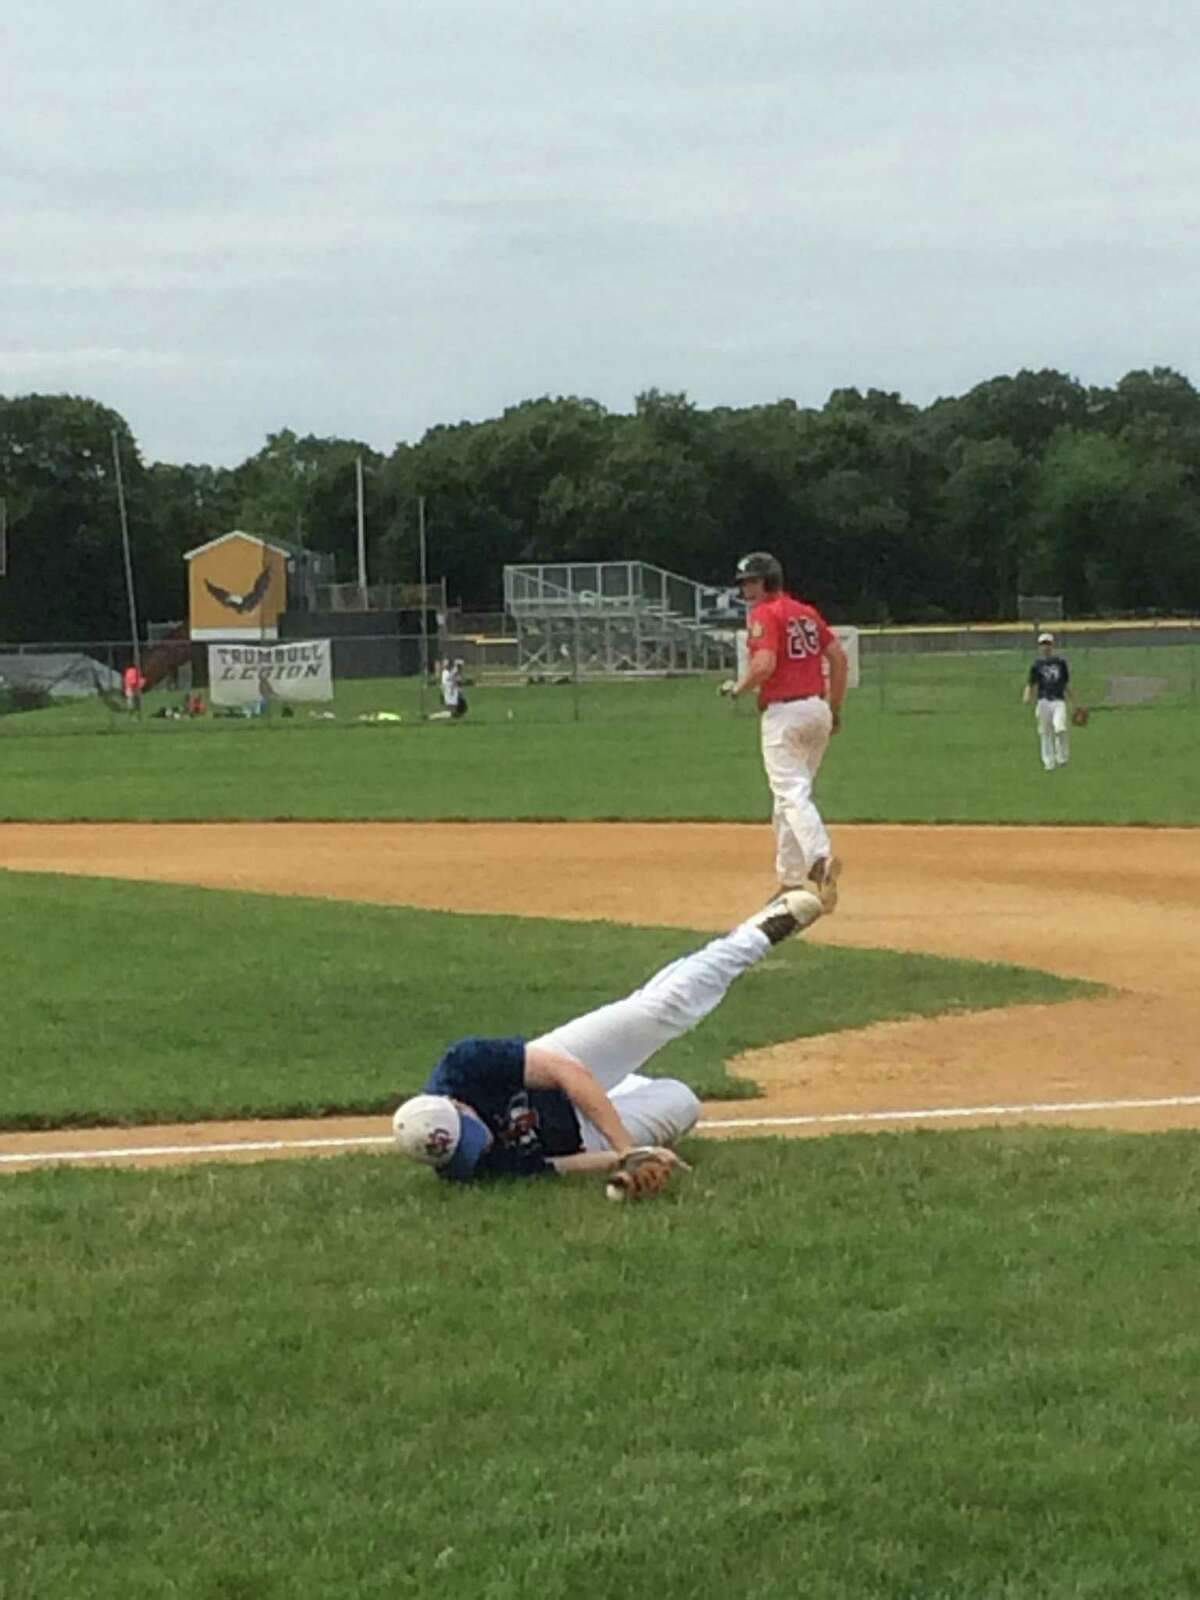 Darien-New Canaan Junior Legion first baseman Ryan Radecki makes a diving catch to end the second inning of a regular season game at Trumbull on Saturday, July 19.